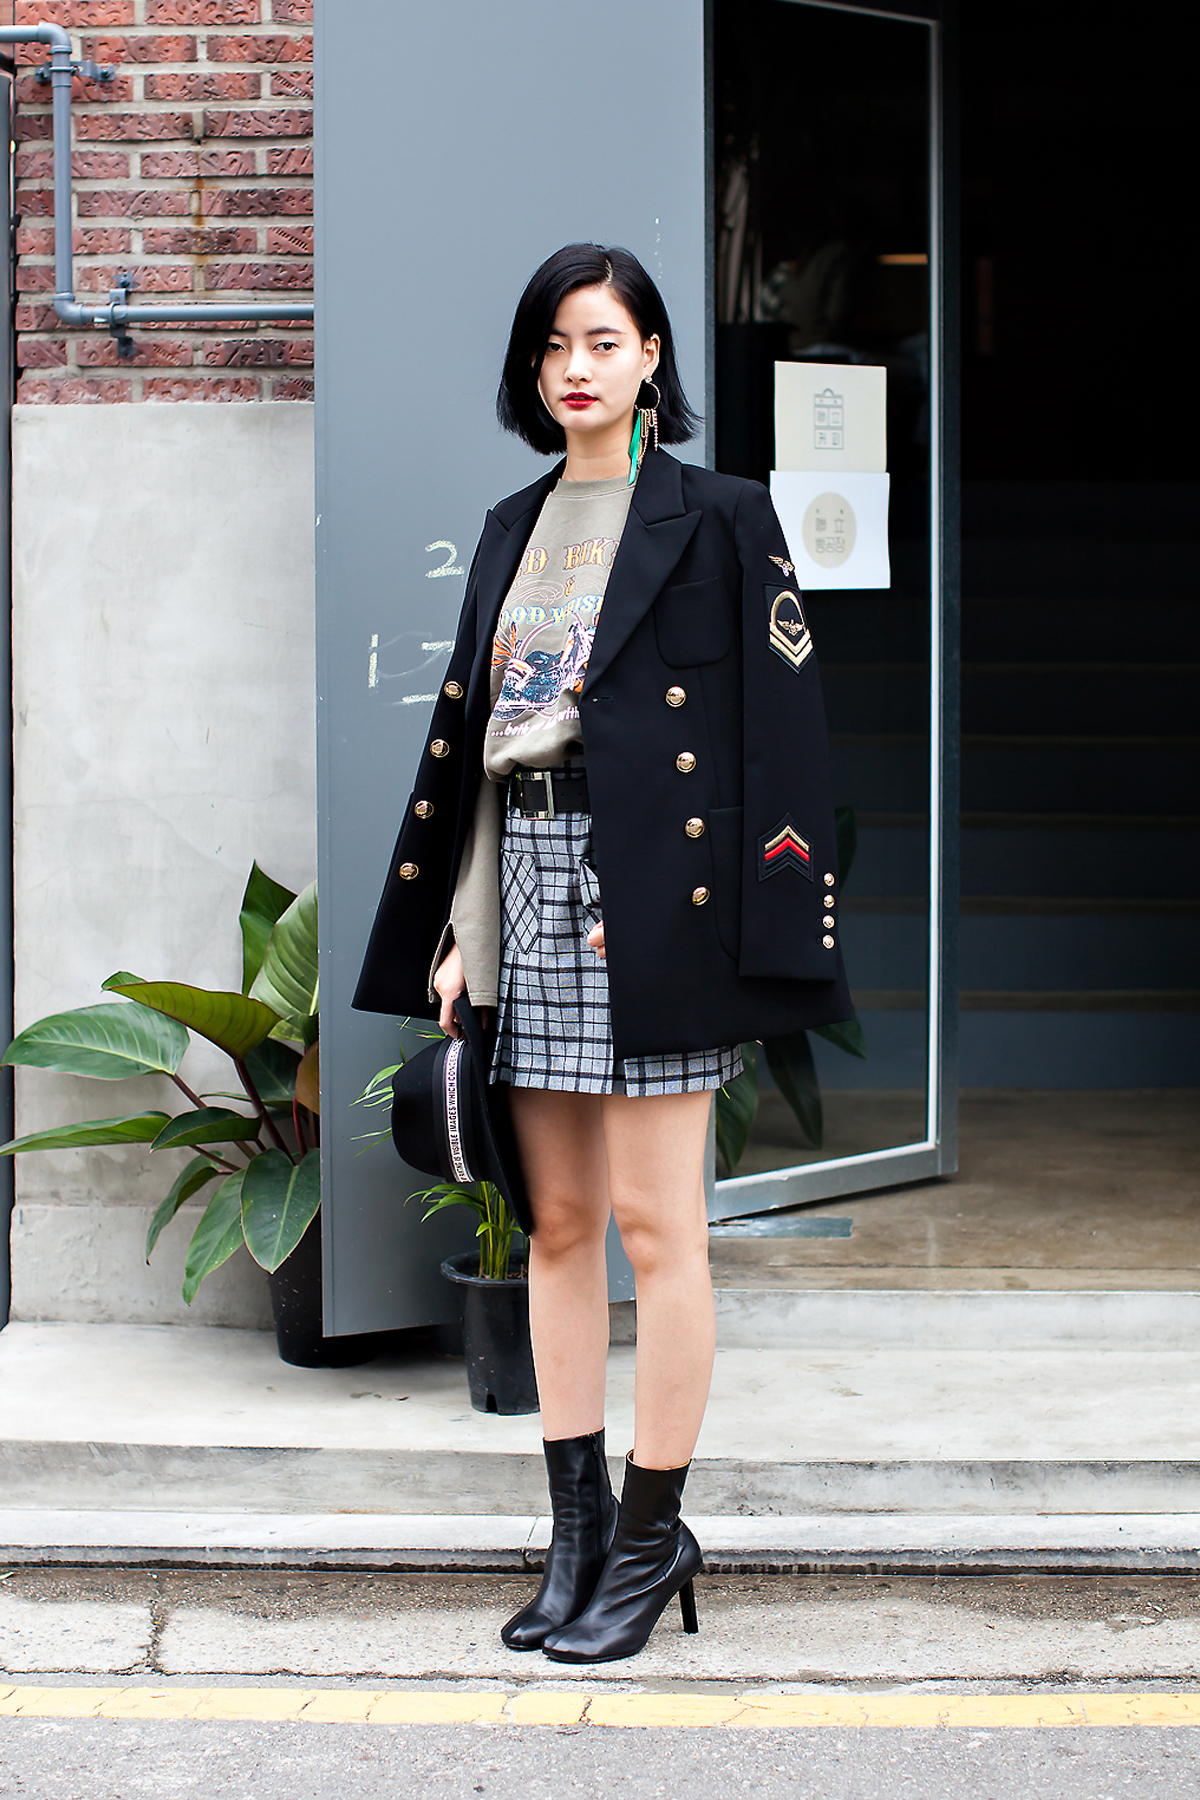 Baek Eunkyung, Street Fashion 2017 in Seoul.jpg